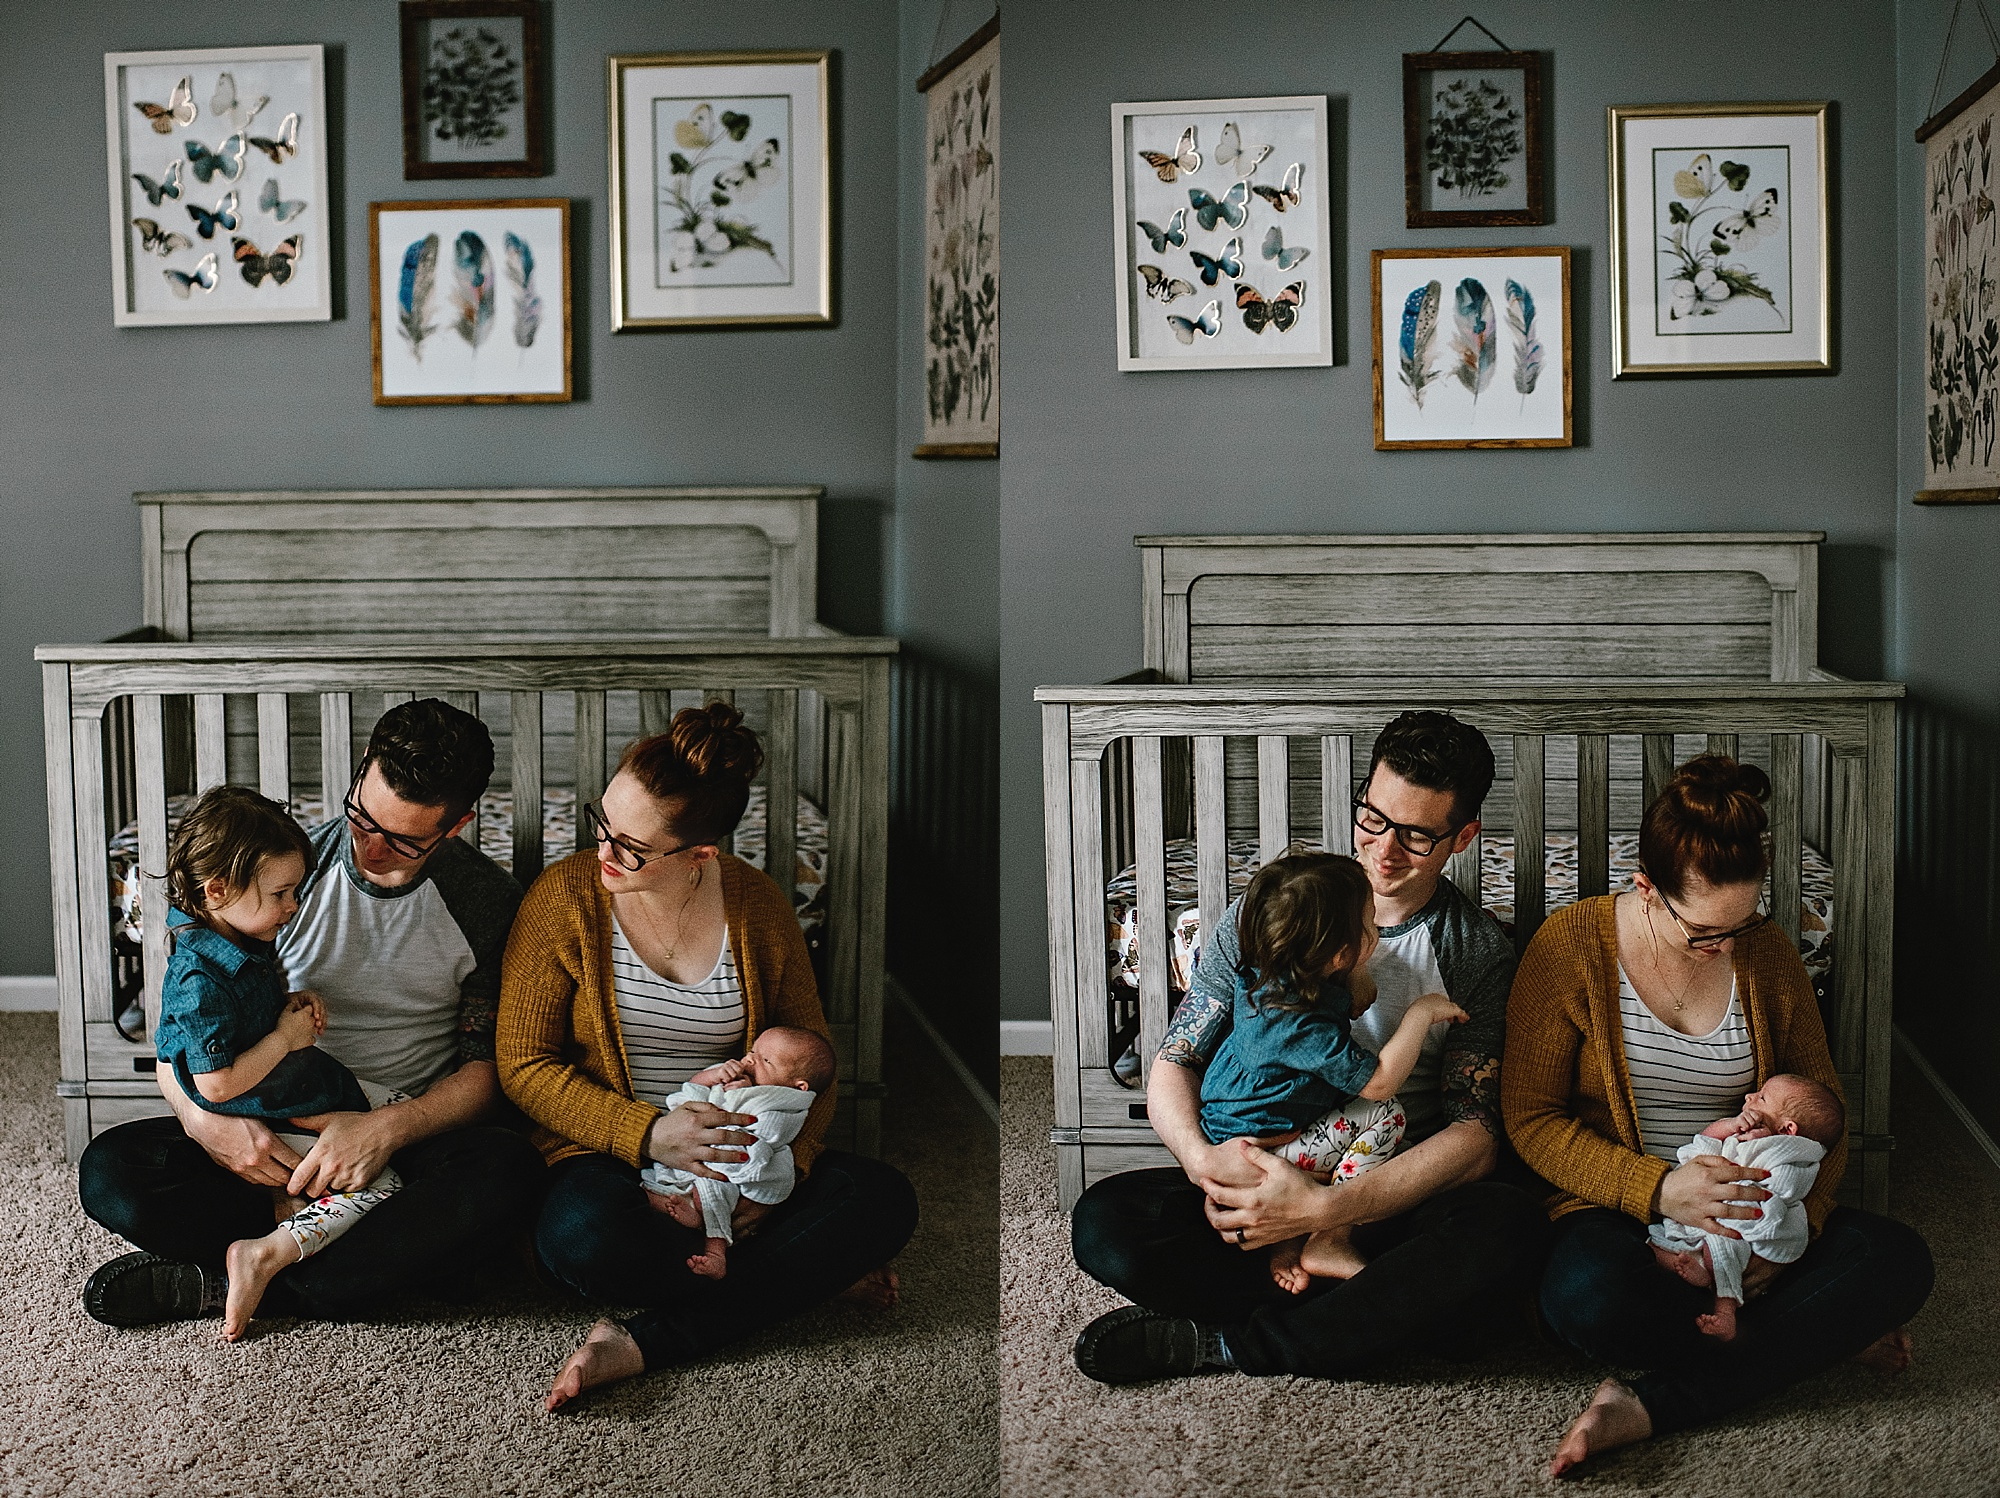 lauren-grayson-photography-cleveland-ohio-photographer-newborn-session-in-home-lifestyle-josephine_0637.jpg